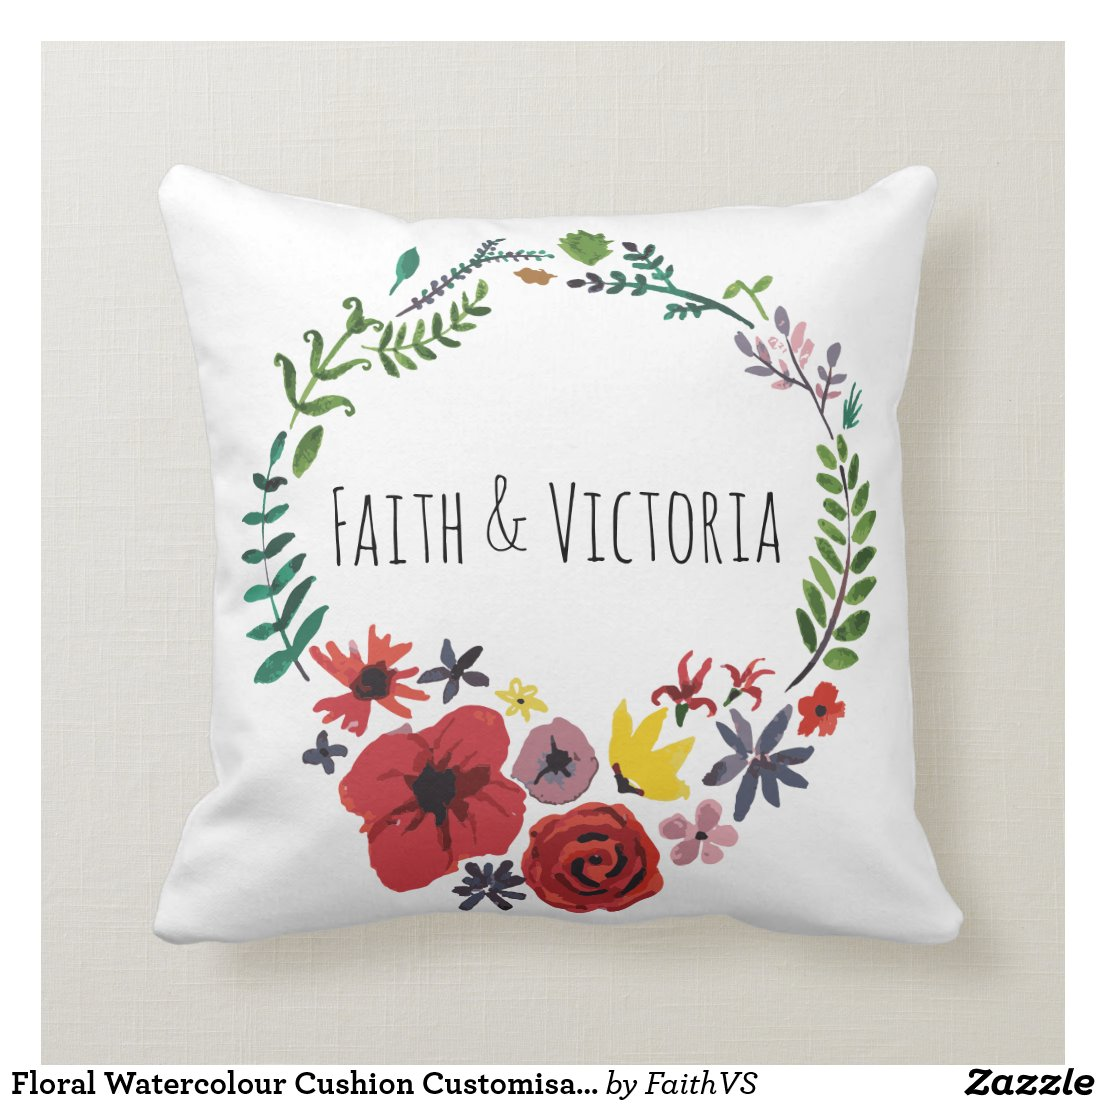 Floral Watercolour Cushion